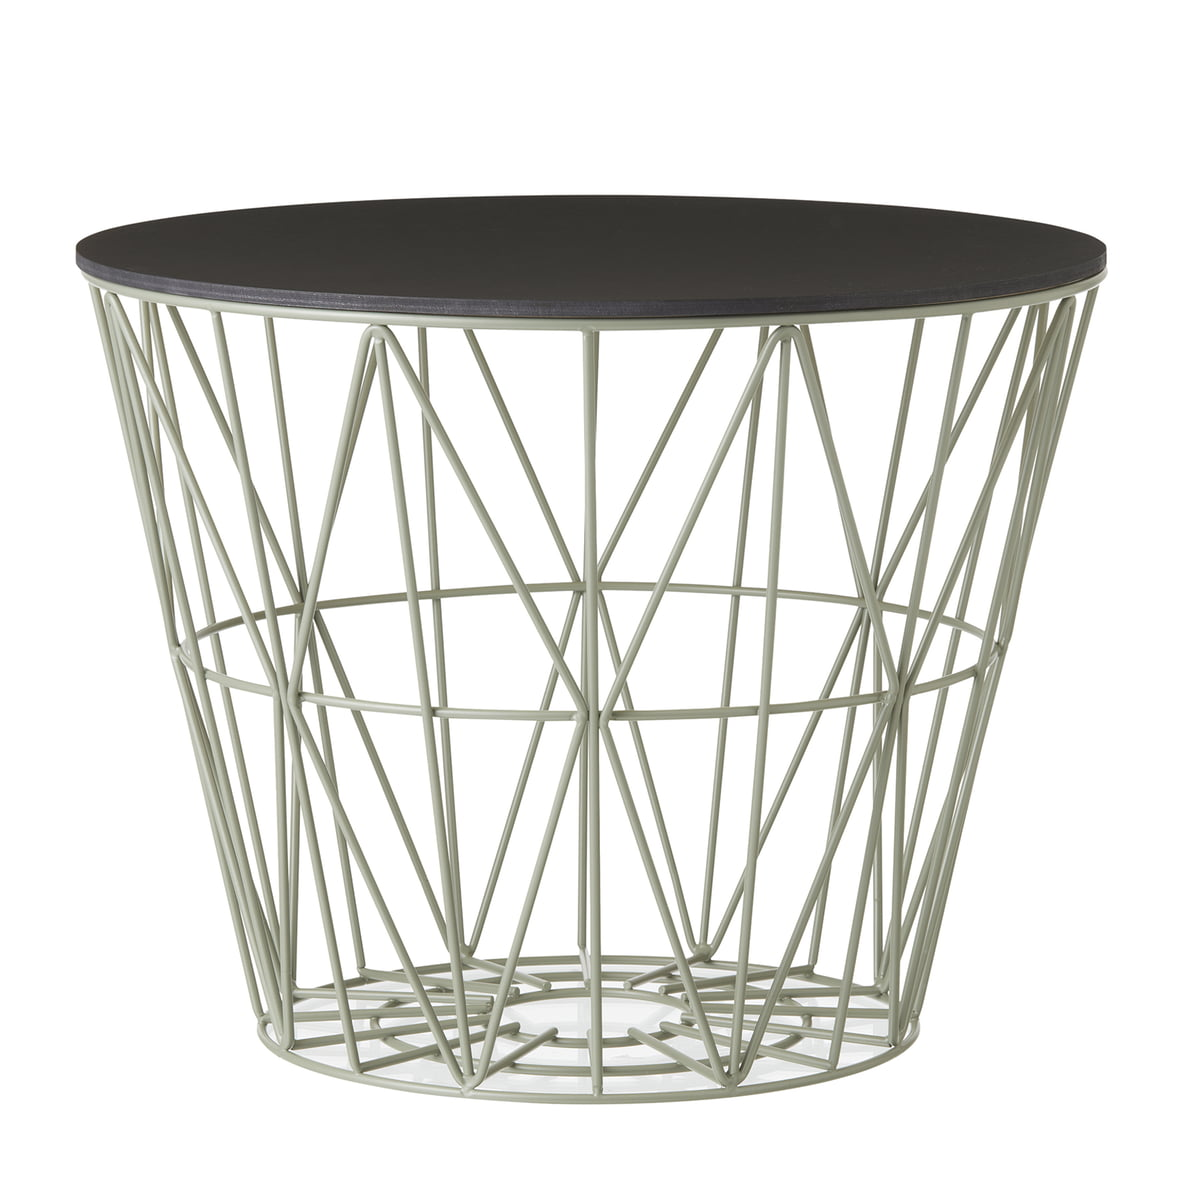 Wire Storage Baskets and Bins. Wire and mesh storage baskets are a great solution for organizing pretty much any space in the home or office.